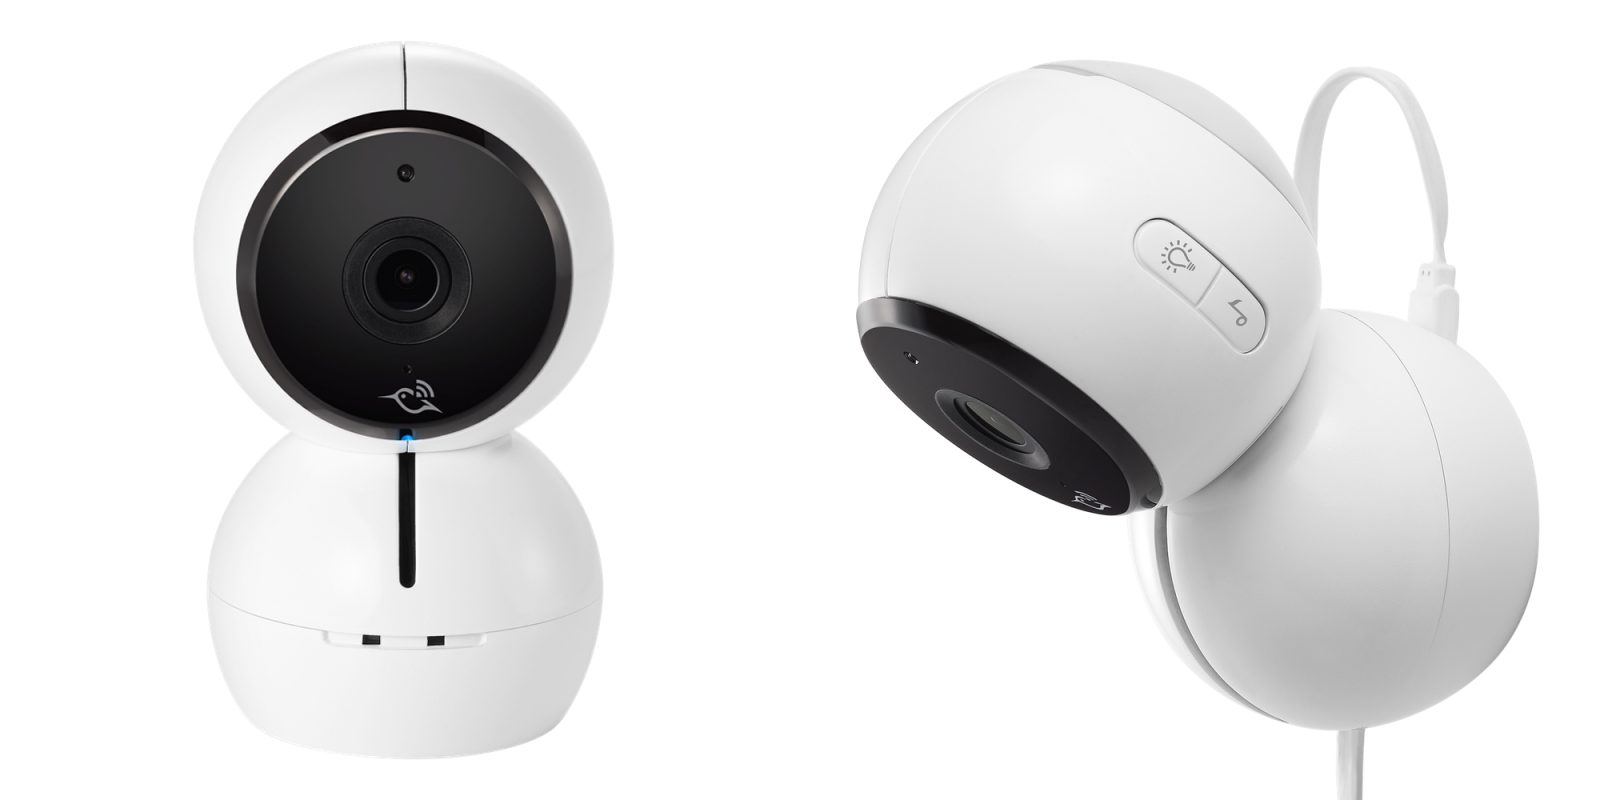 NETGEAR's Arlo Baby Camera w/ HomeKit support is now $170 (all-time